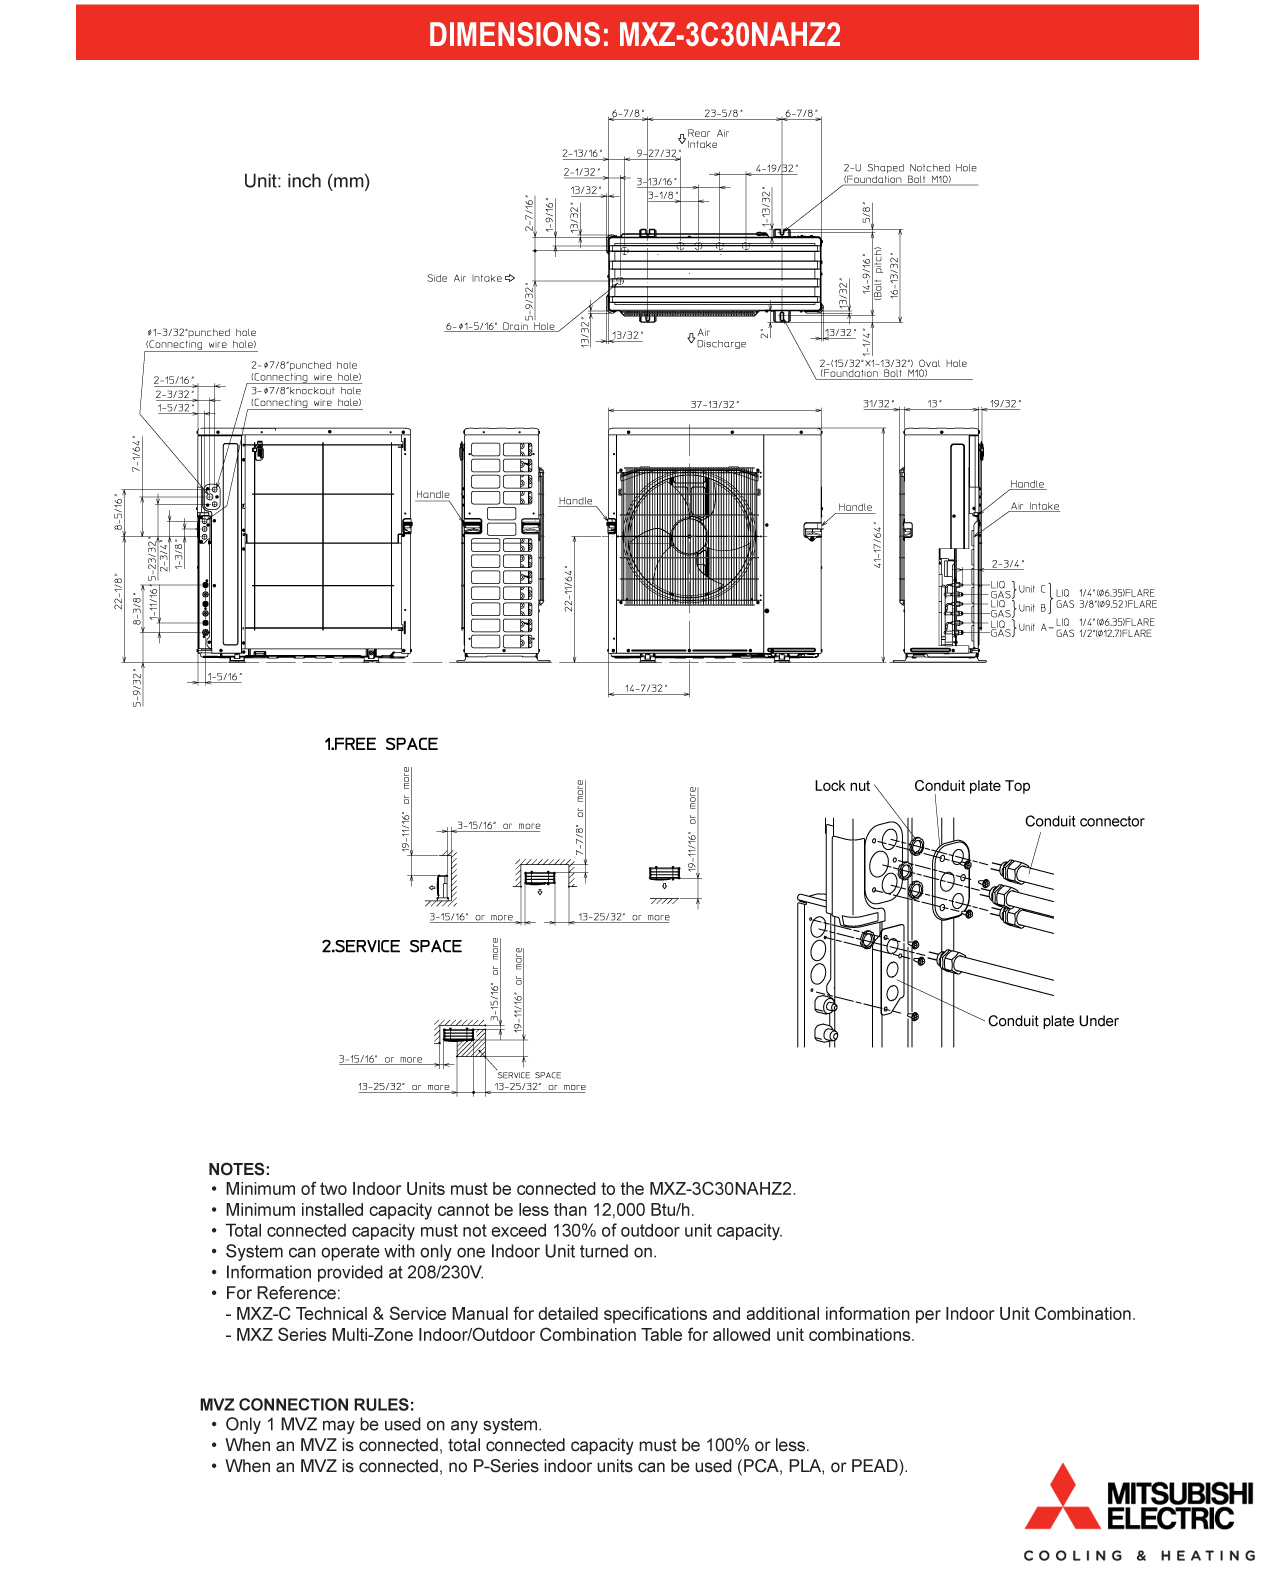 Mini Split Multi 3 Zone Mitsubishi H2i Hyper Heat Up To 18 Seer Intertherm Electric Furnace Wiring Diagram Share The Knownledge Start Now When Selecting Extra Options And Save Purchasing Together